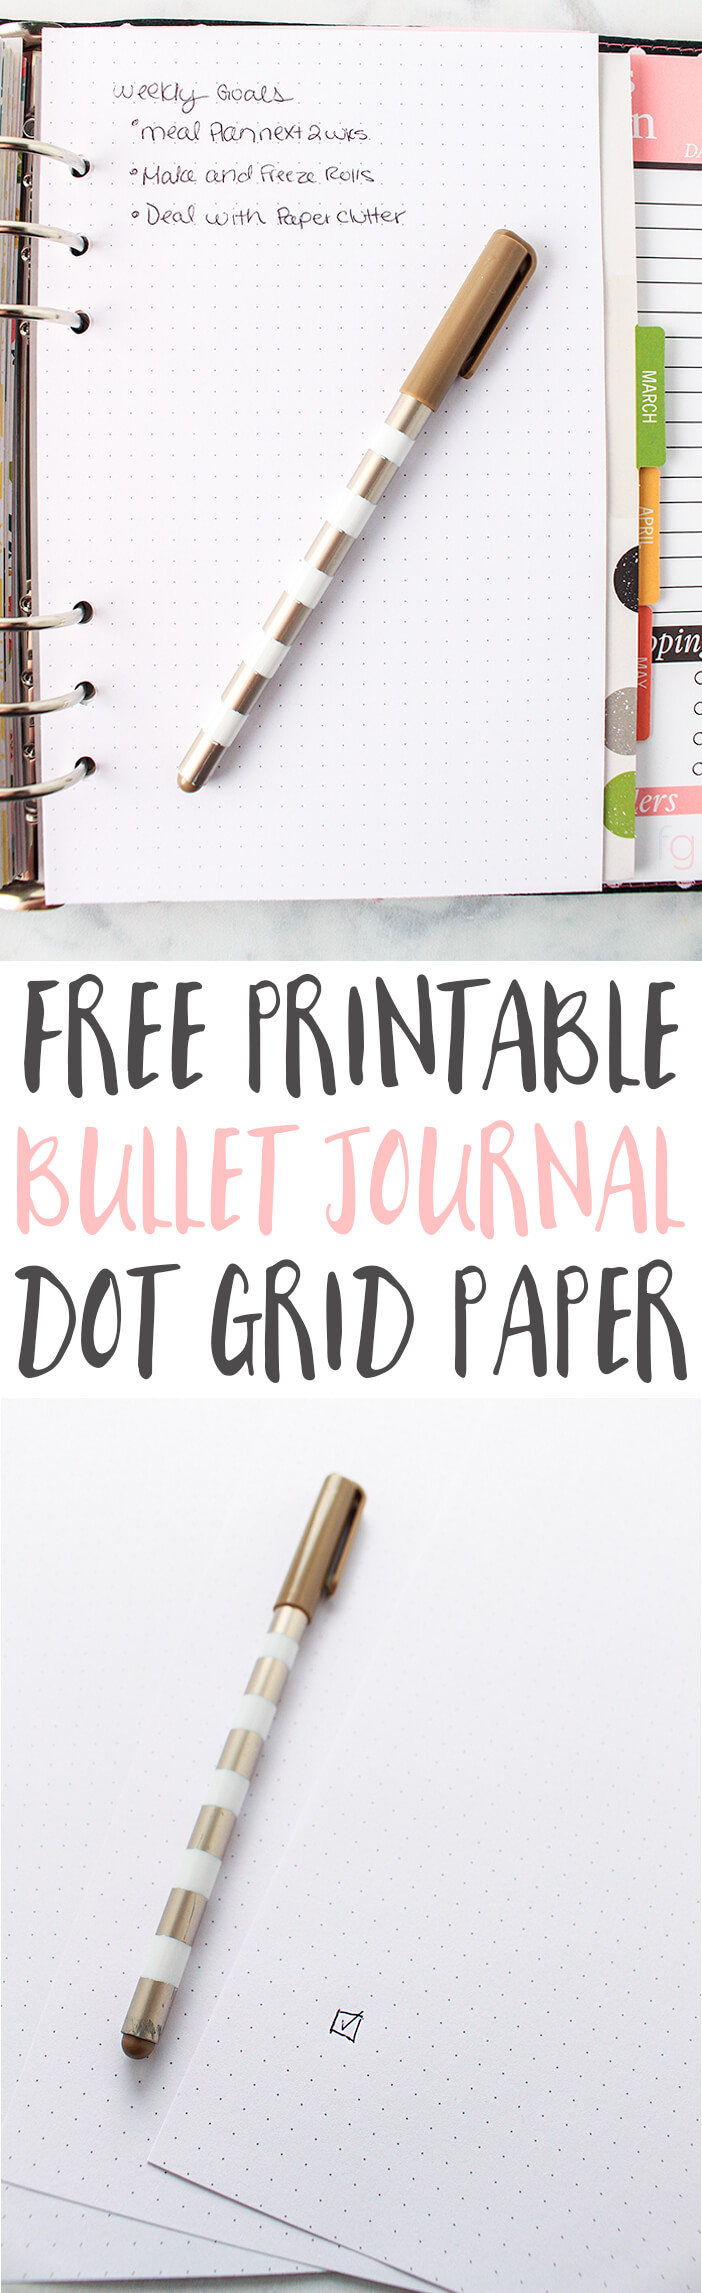 picture regarding Printable Bullet Journal Paper named Dot Grid Paper Printable - No cost Bullet Magazine Website page